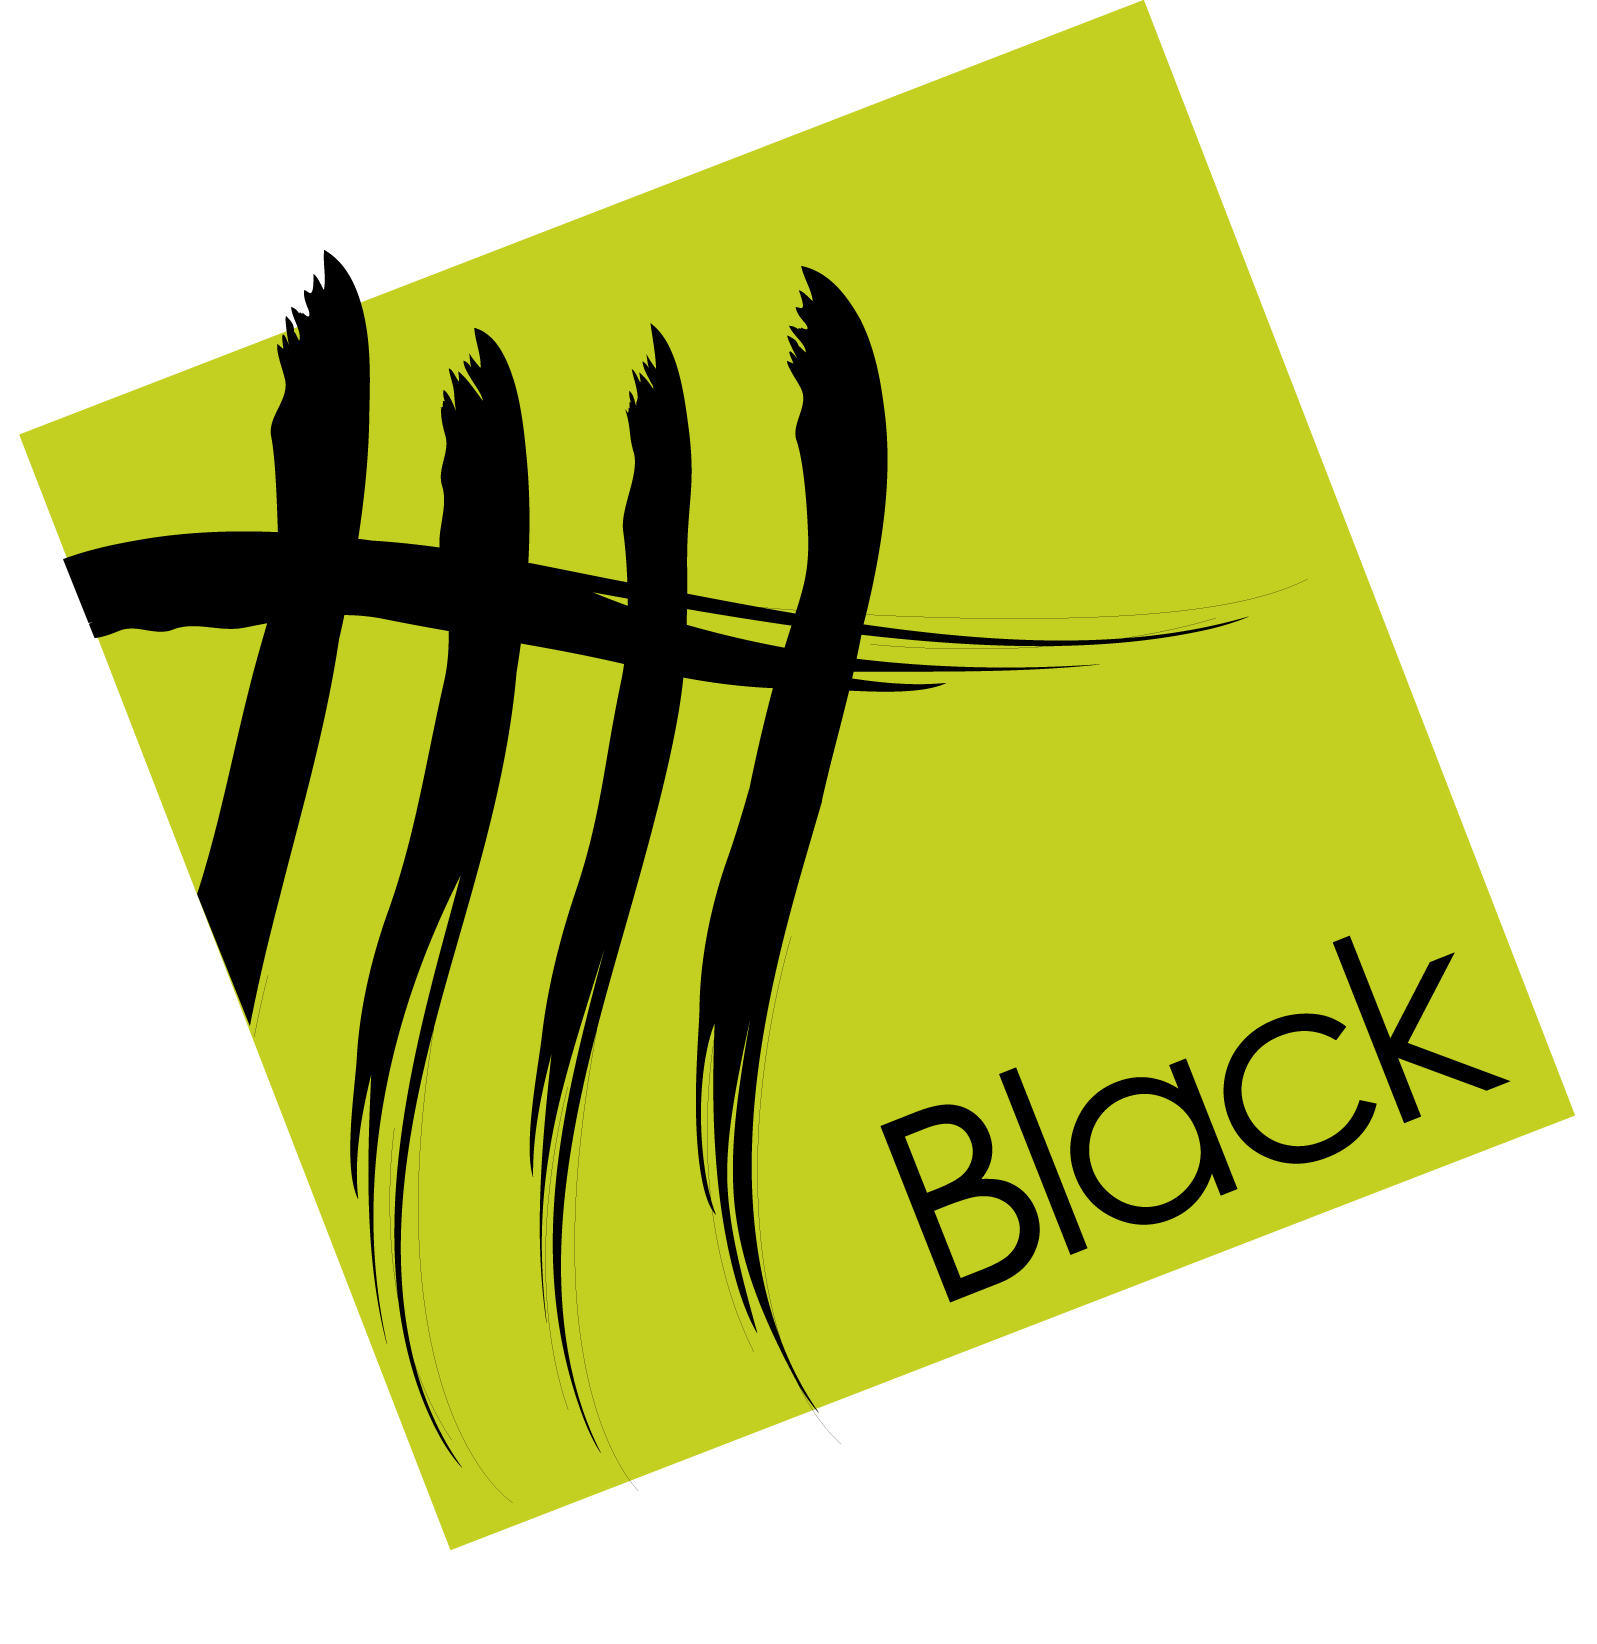 Black Real Estate Group